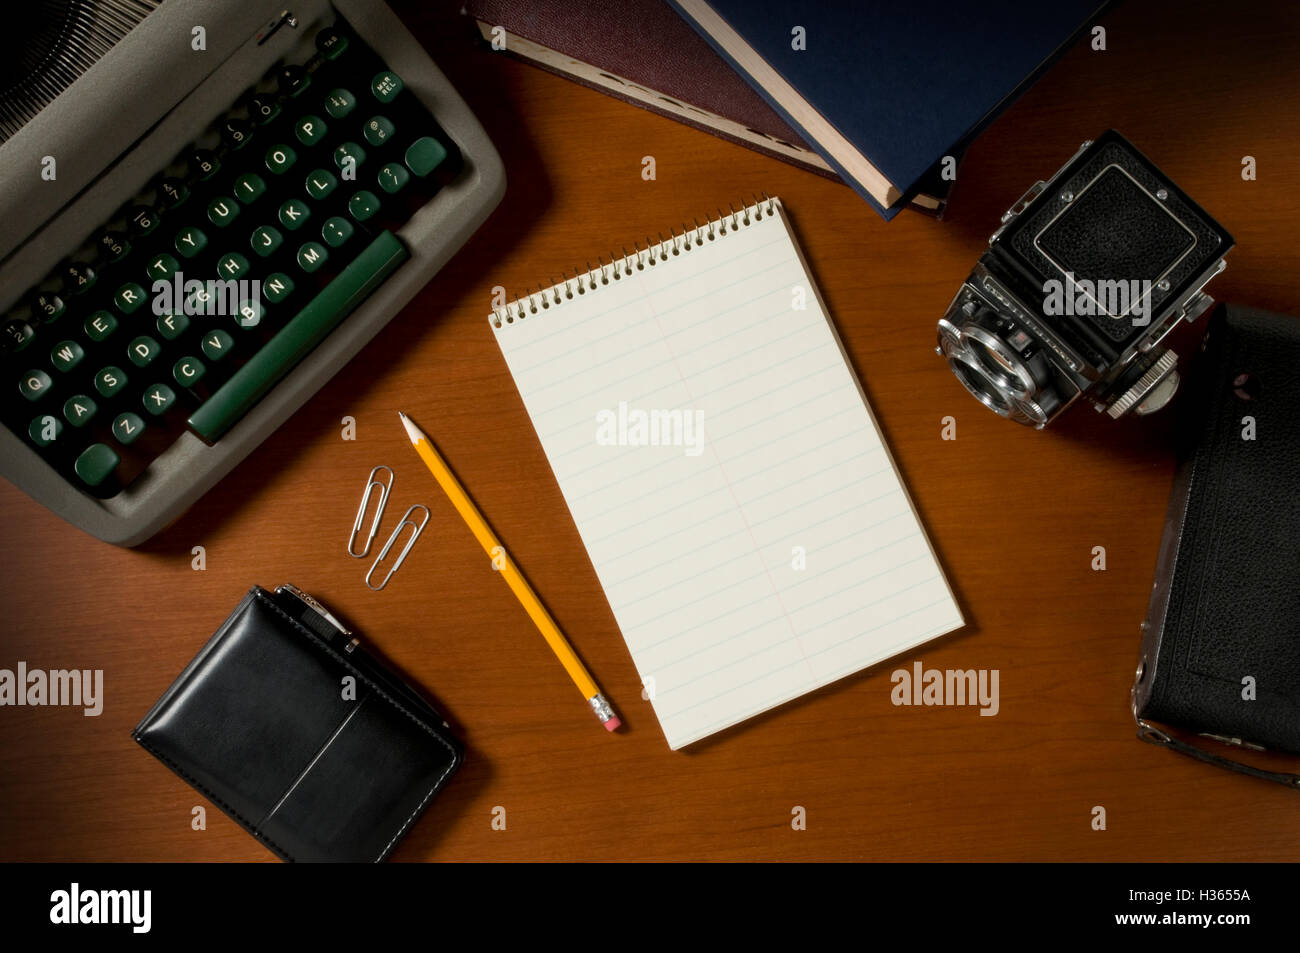 Blank steno notepad on a wooden desktop among vintage journalism props, including a typewriter and film camera - Stock Image